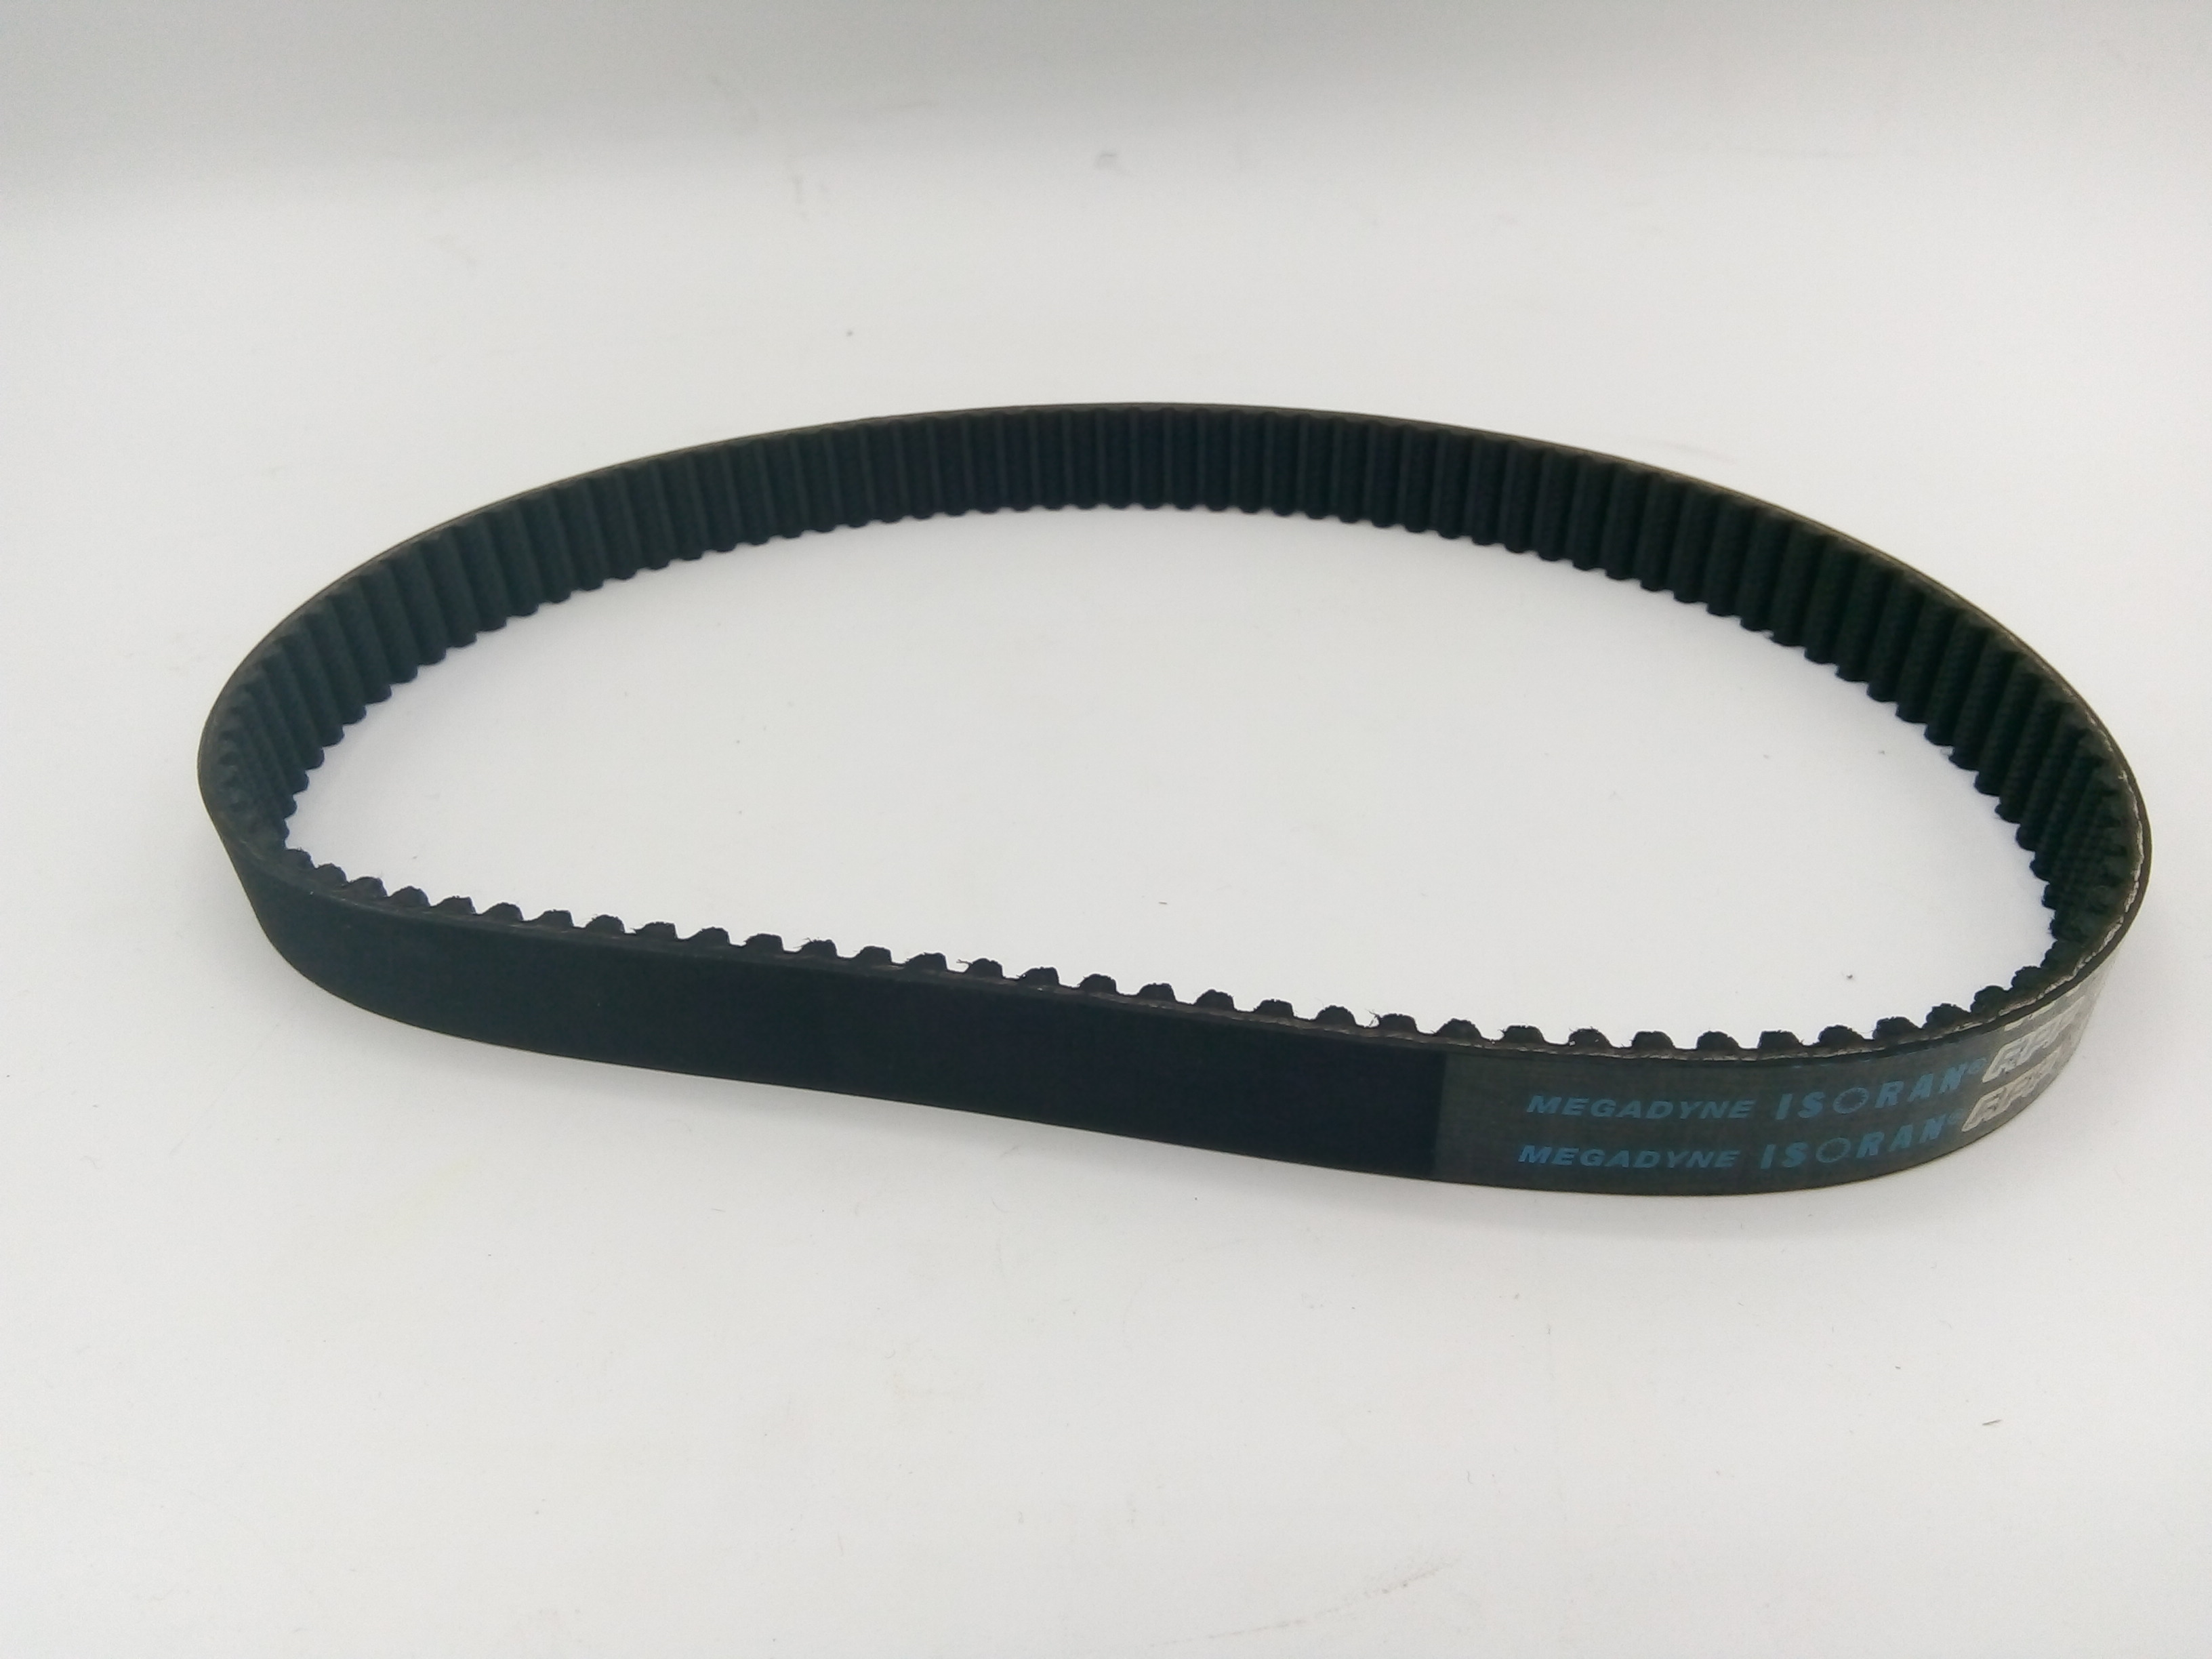 Timing Belt 525 SLV5 15 Z Axis RMX 3500 4000 5000